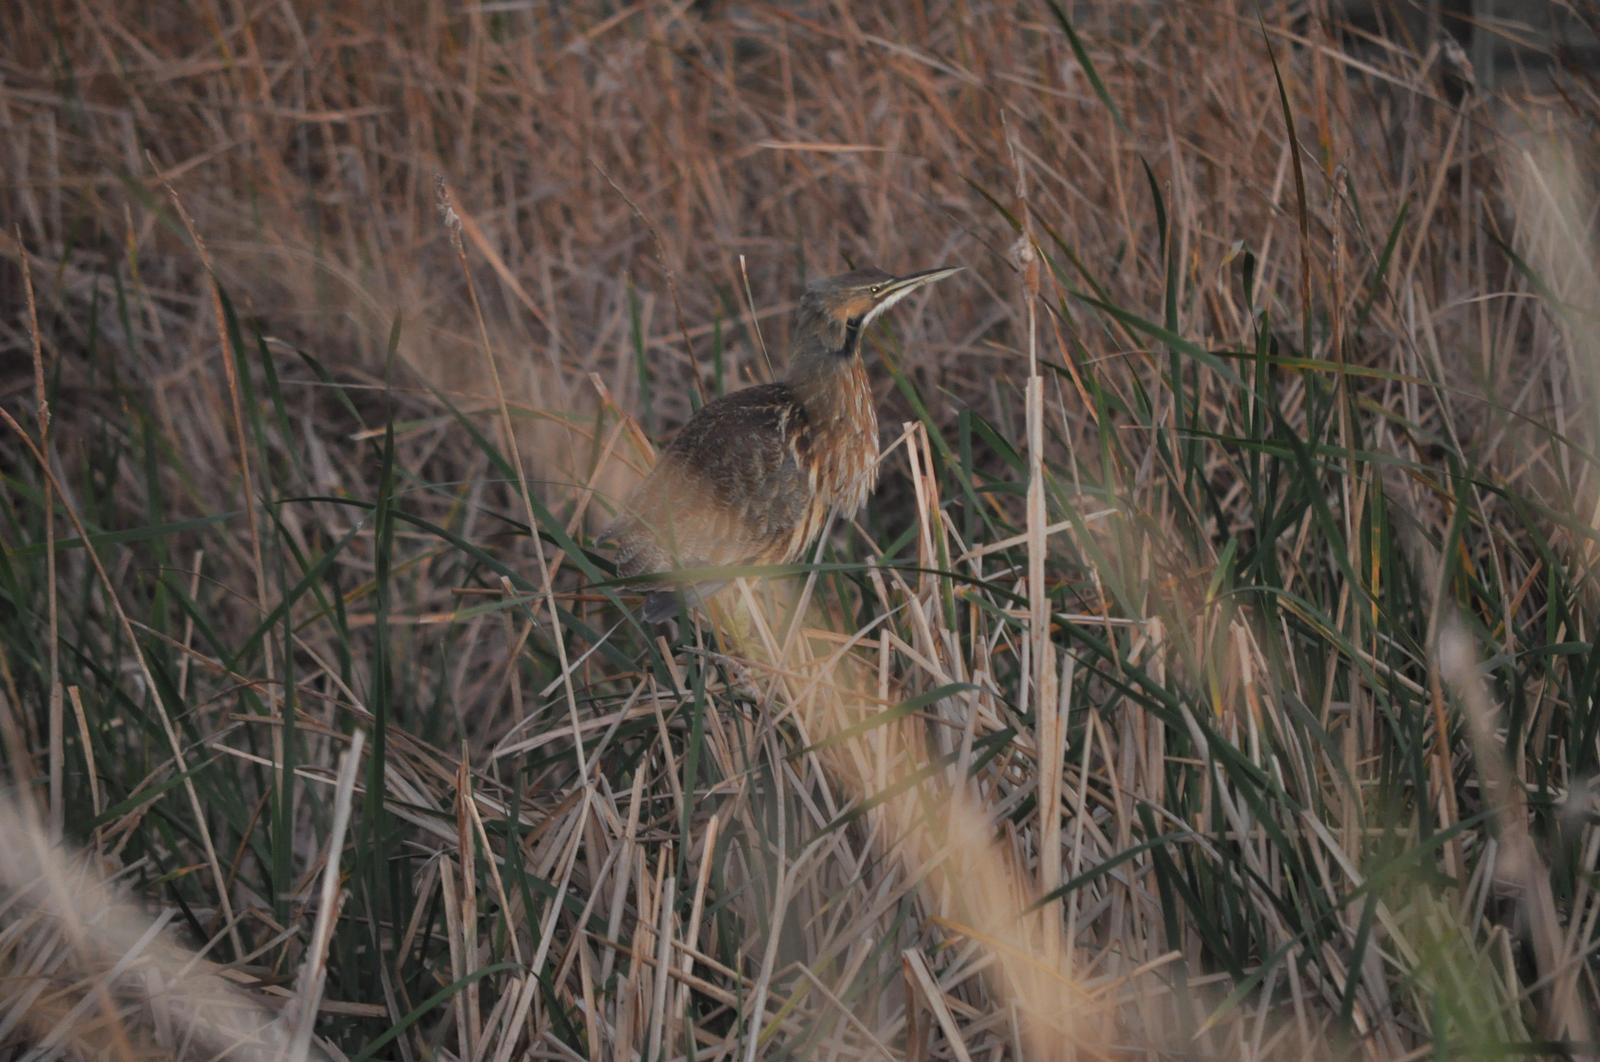 American Bittern Photo by Terry Campbell